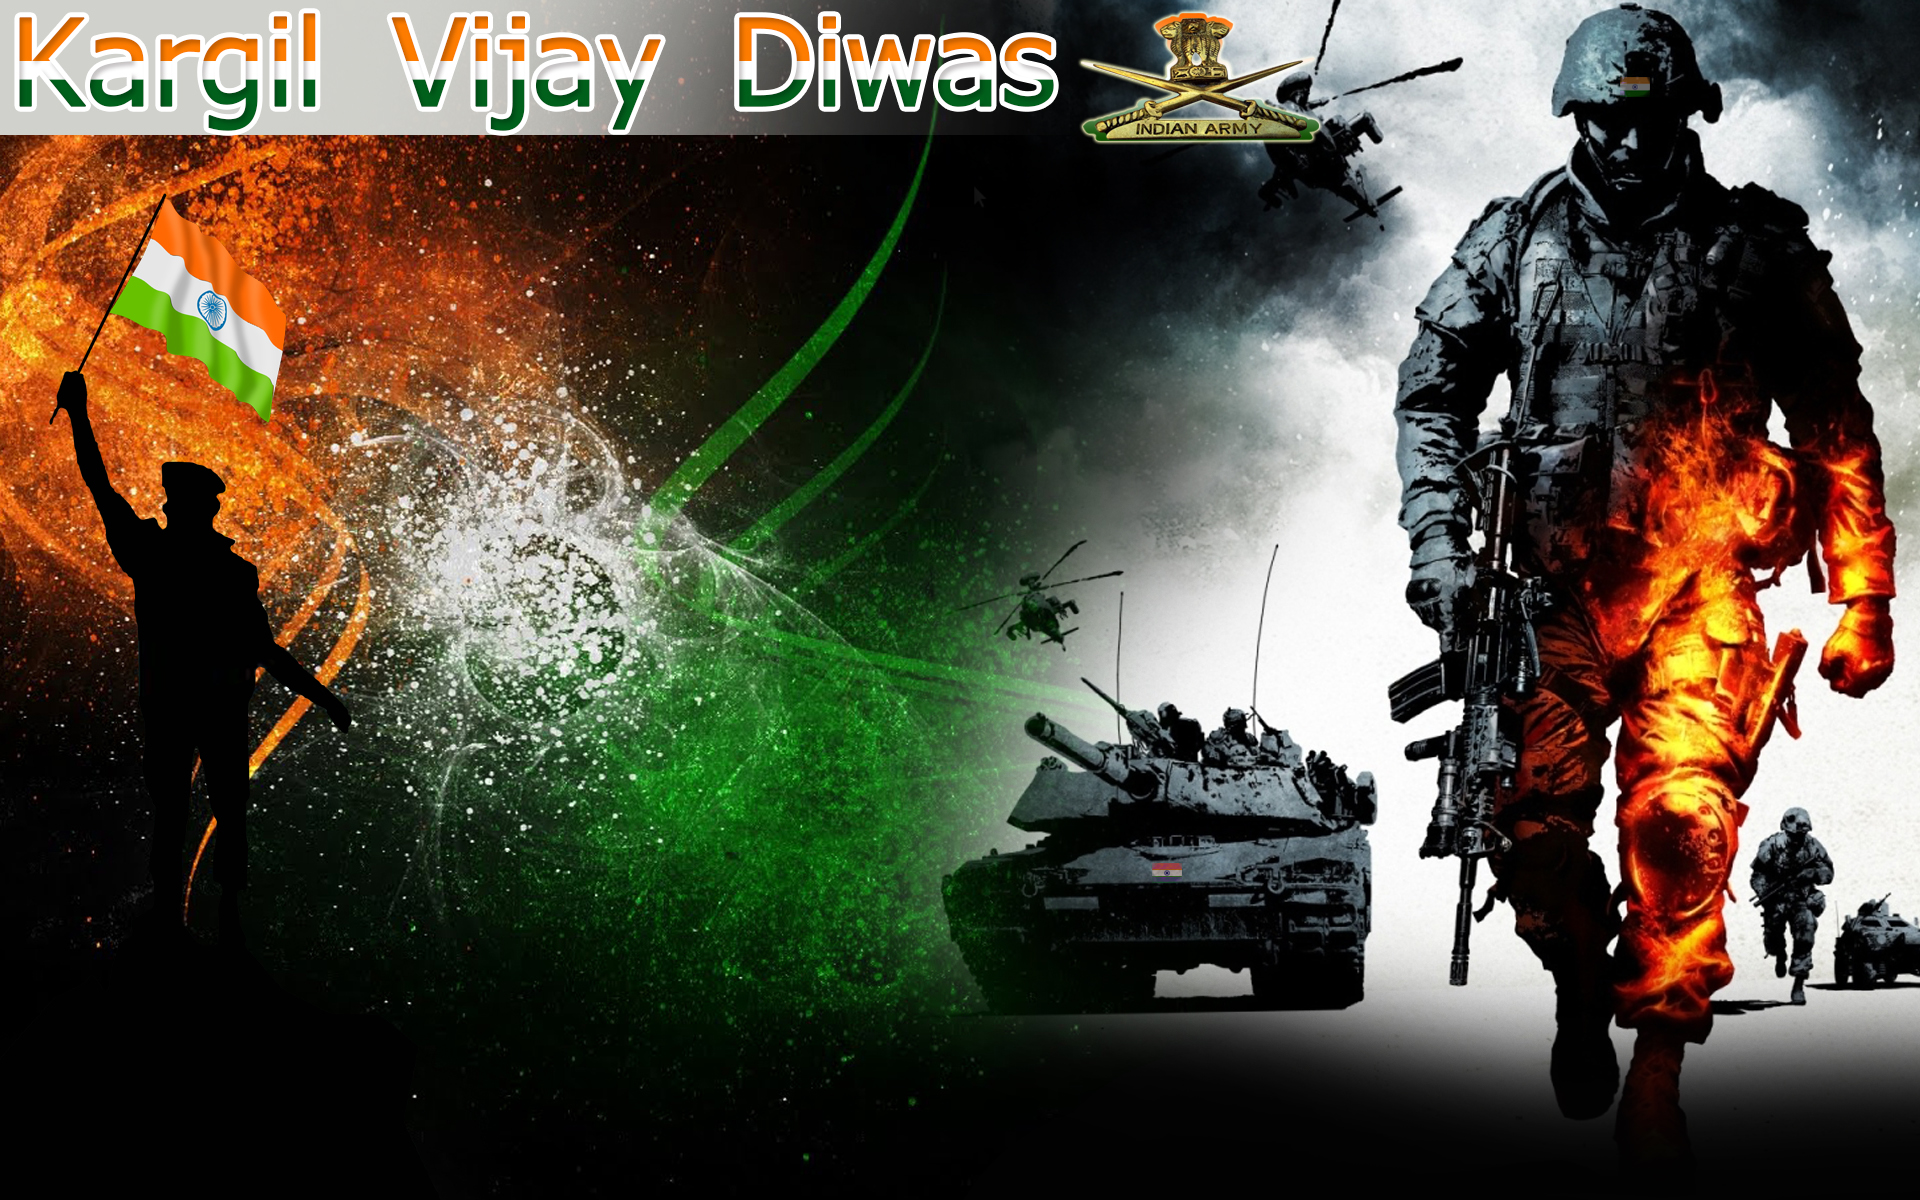 A Salute to Our Heroes   Kargil Vijay Diwas   Education article 1920x1200